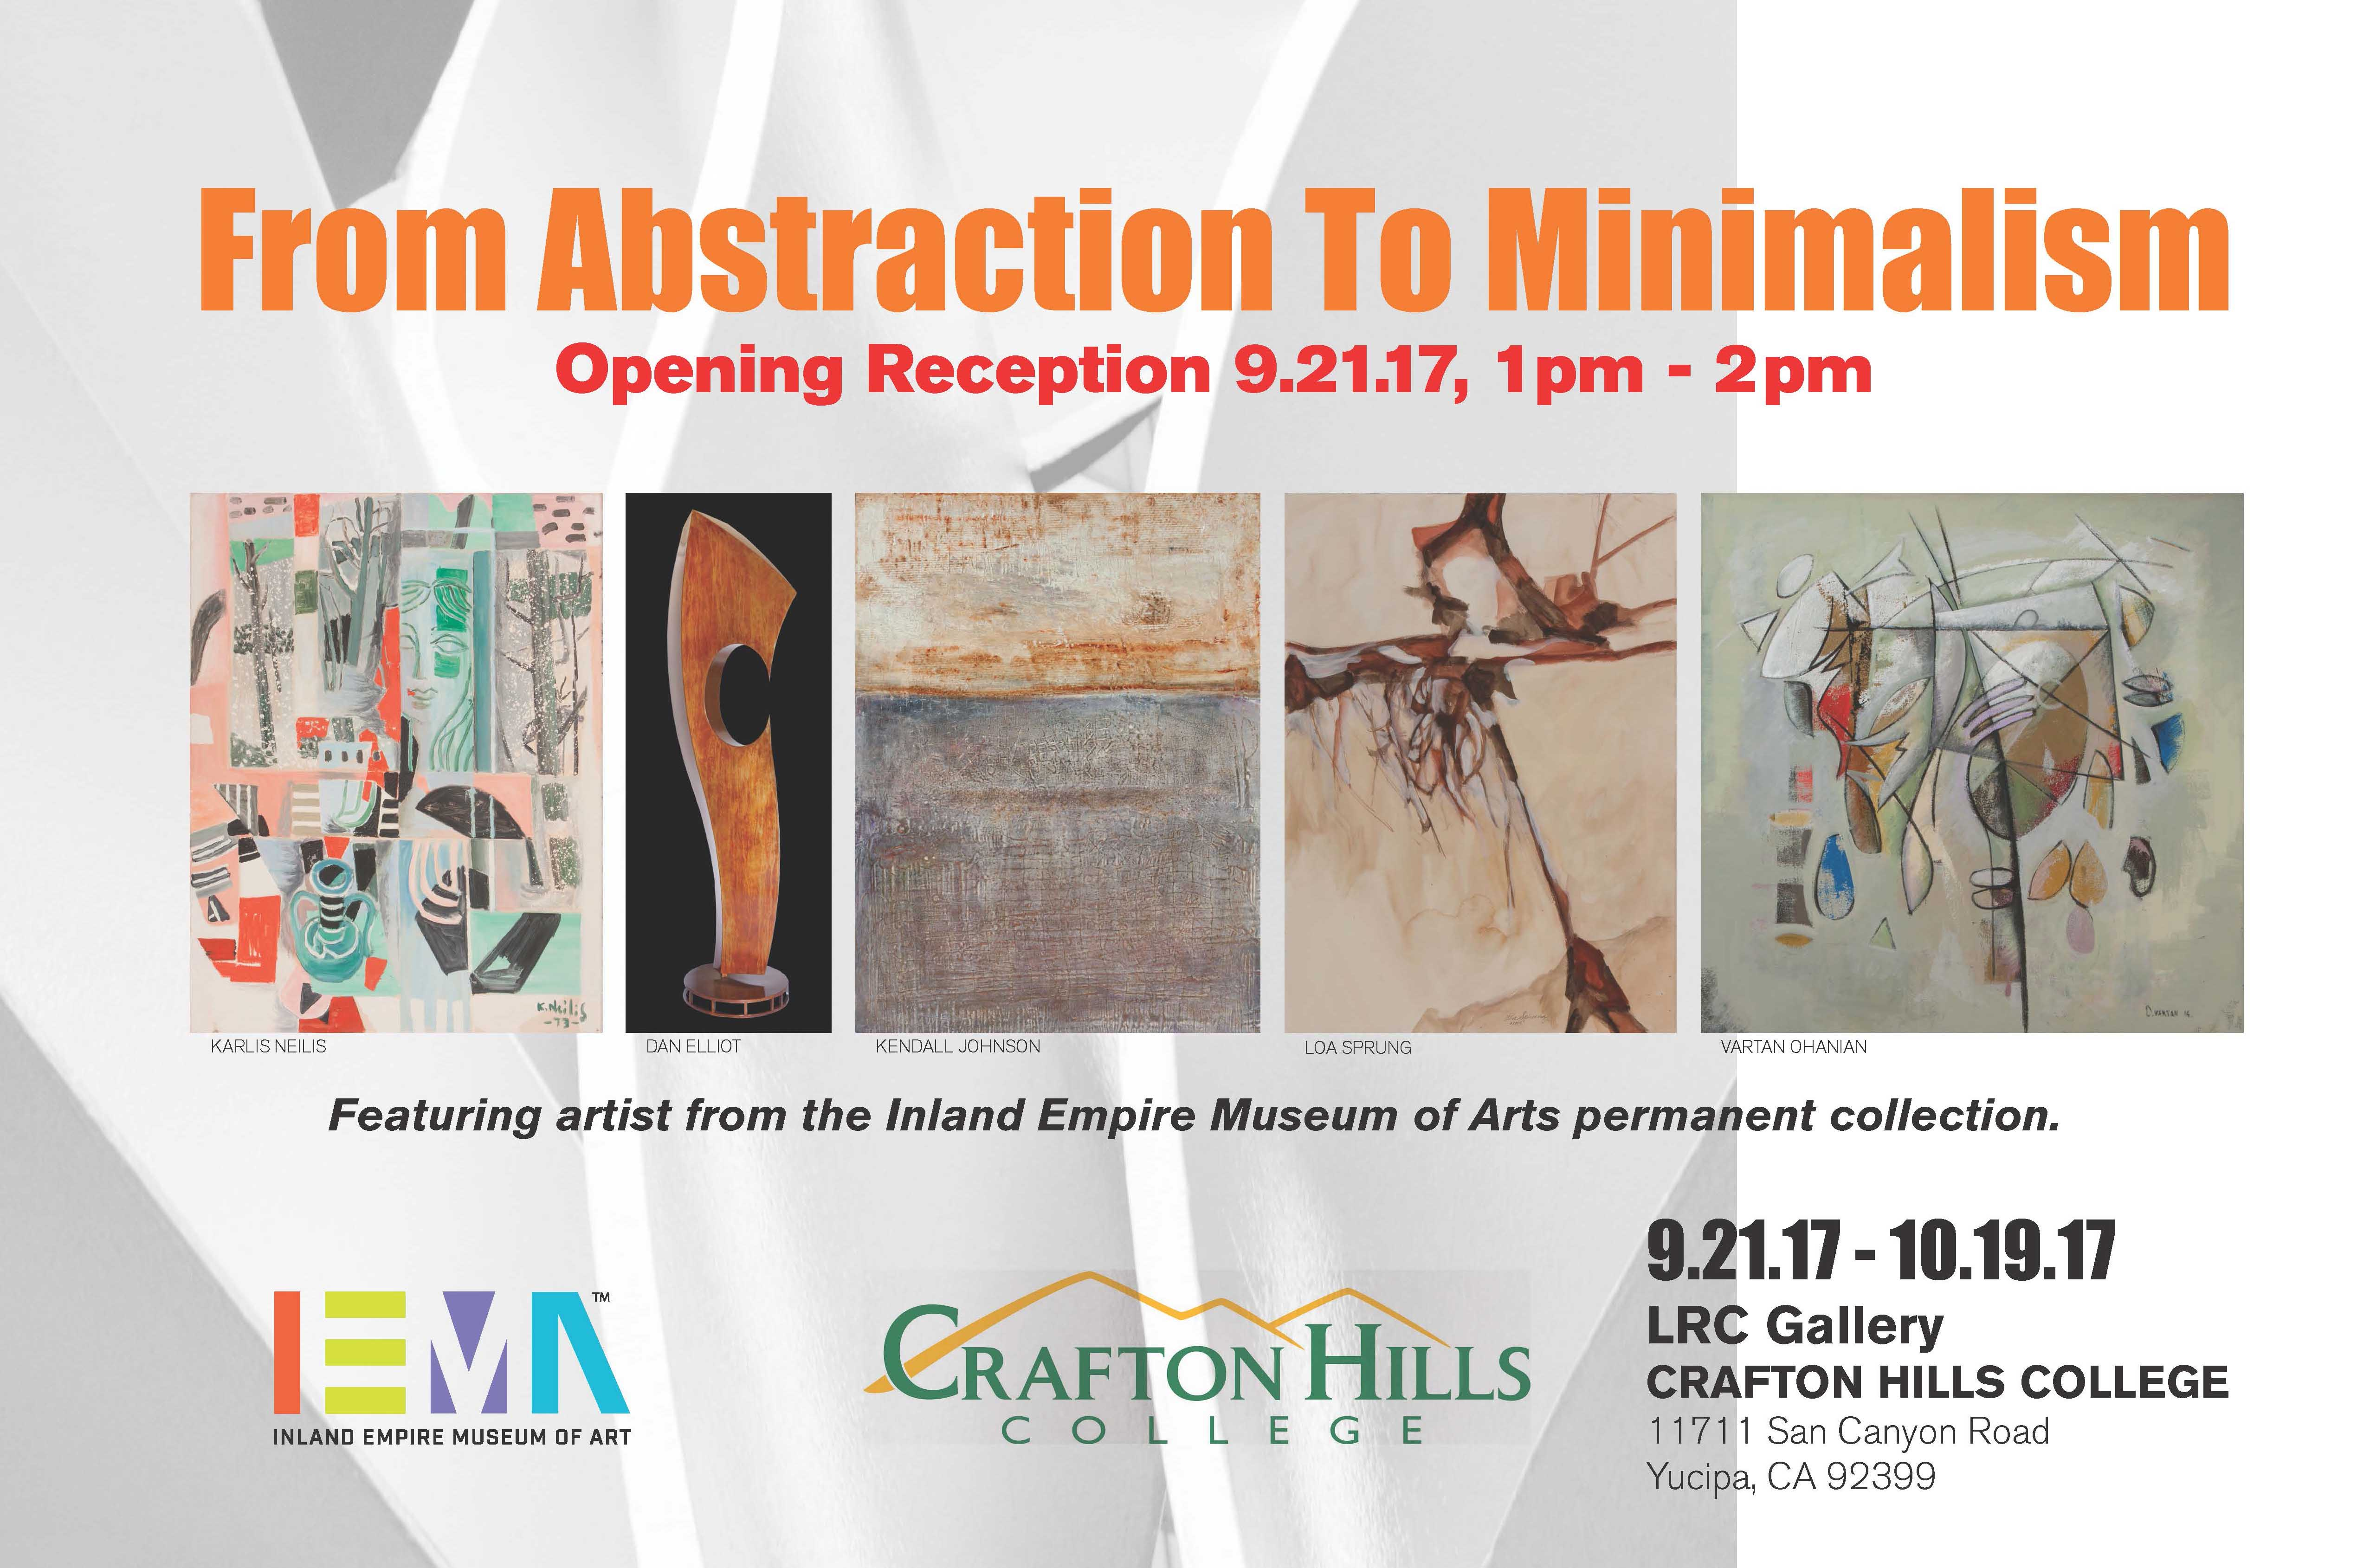 CHC Art Gallery From Abstraction To Minimalism opening September 21, 2017 from 1pm - 2pm. Featuring artist from the Inland Empire Museum of Arts permanent collection. LRC gallery at Crafton Hills College